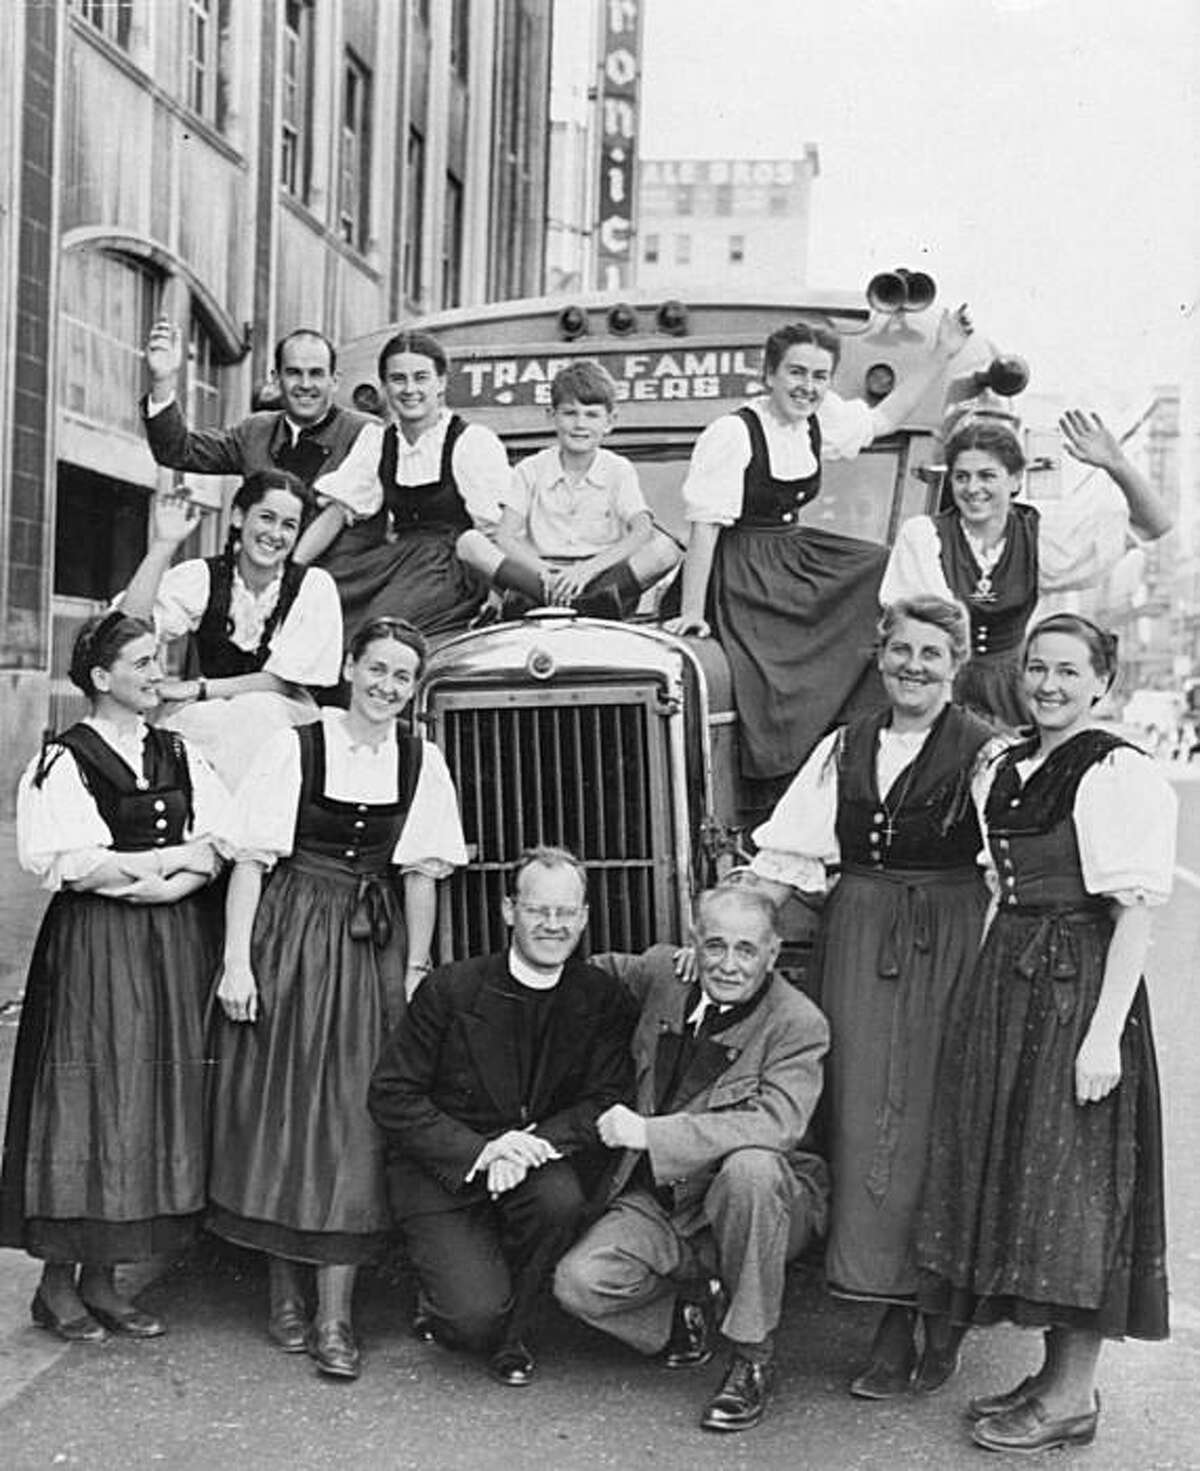 """A 1946 photo provided by Lindstrom Literary Management shows the Trapp Family Singers, whose story was the basis for """"The Sound of Music,"""" during a 1946 U.S. tour. Agathe von Trapp, in the first row, far right, died Tuesday, Dec. 28, 2010 in a suburban Baltimore hospice at age 97."""